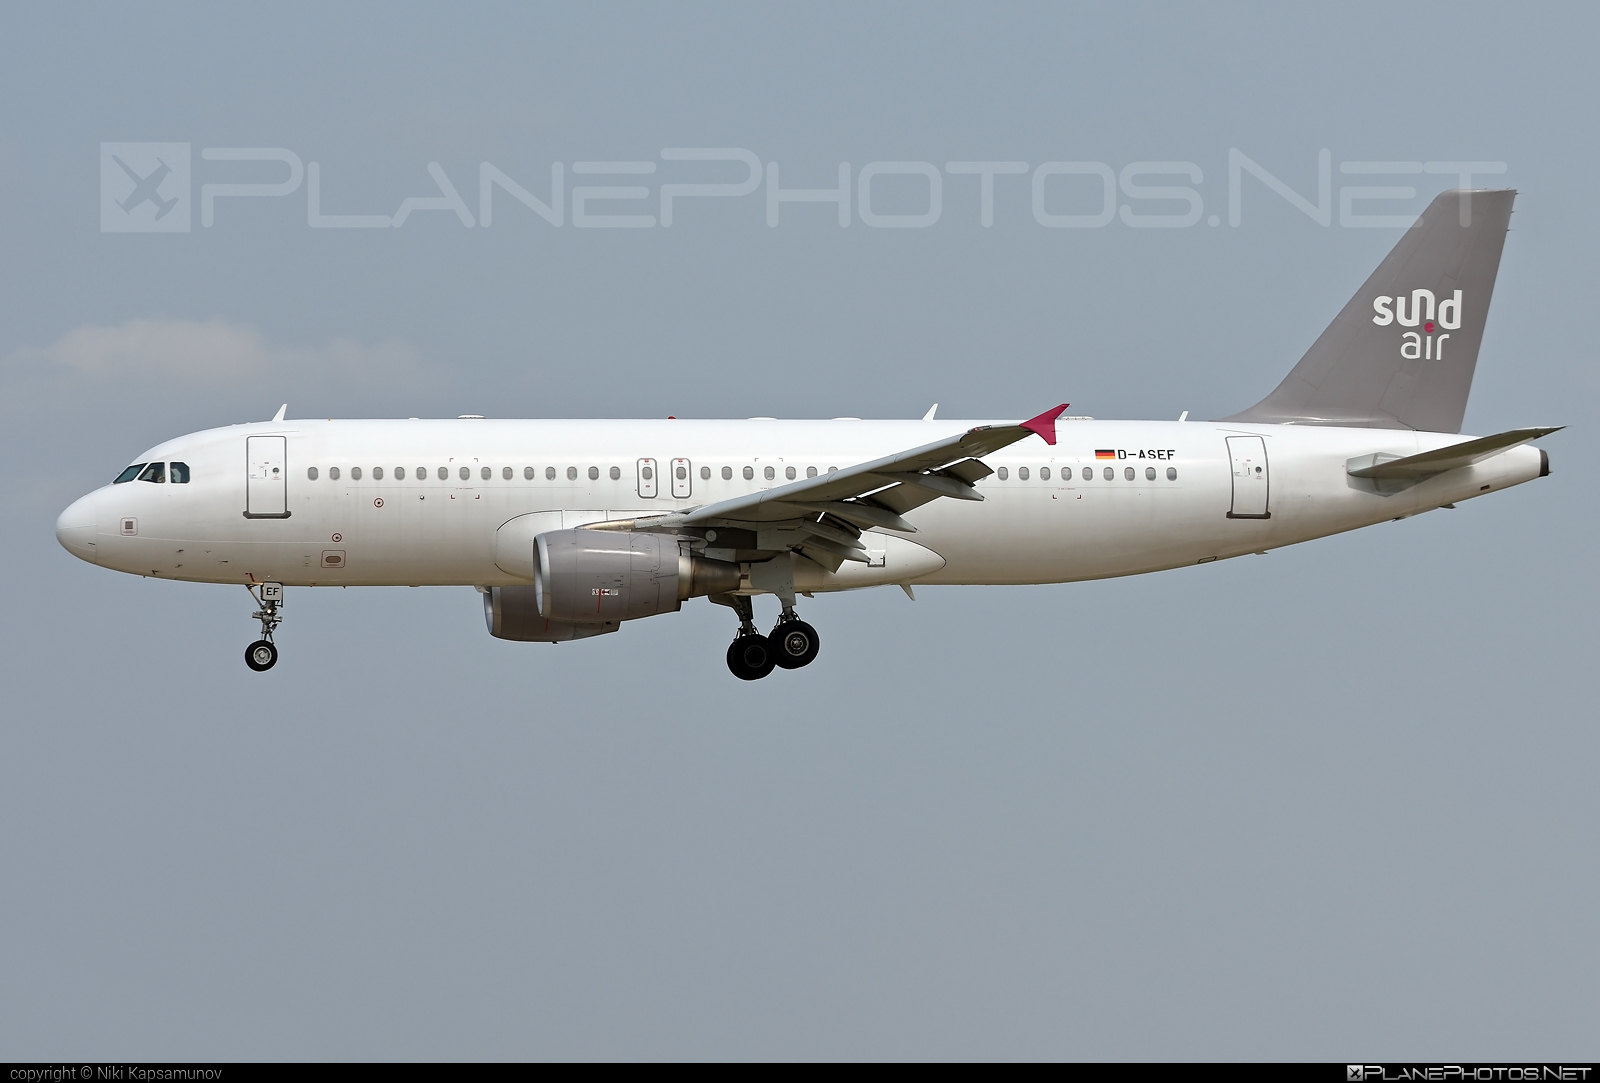 Airbus A320-214 - D-ASEF operated by Sundair #a320 #a320family #airbus #airbus320